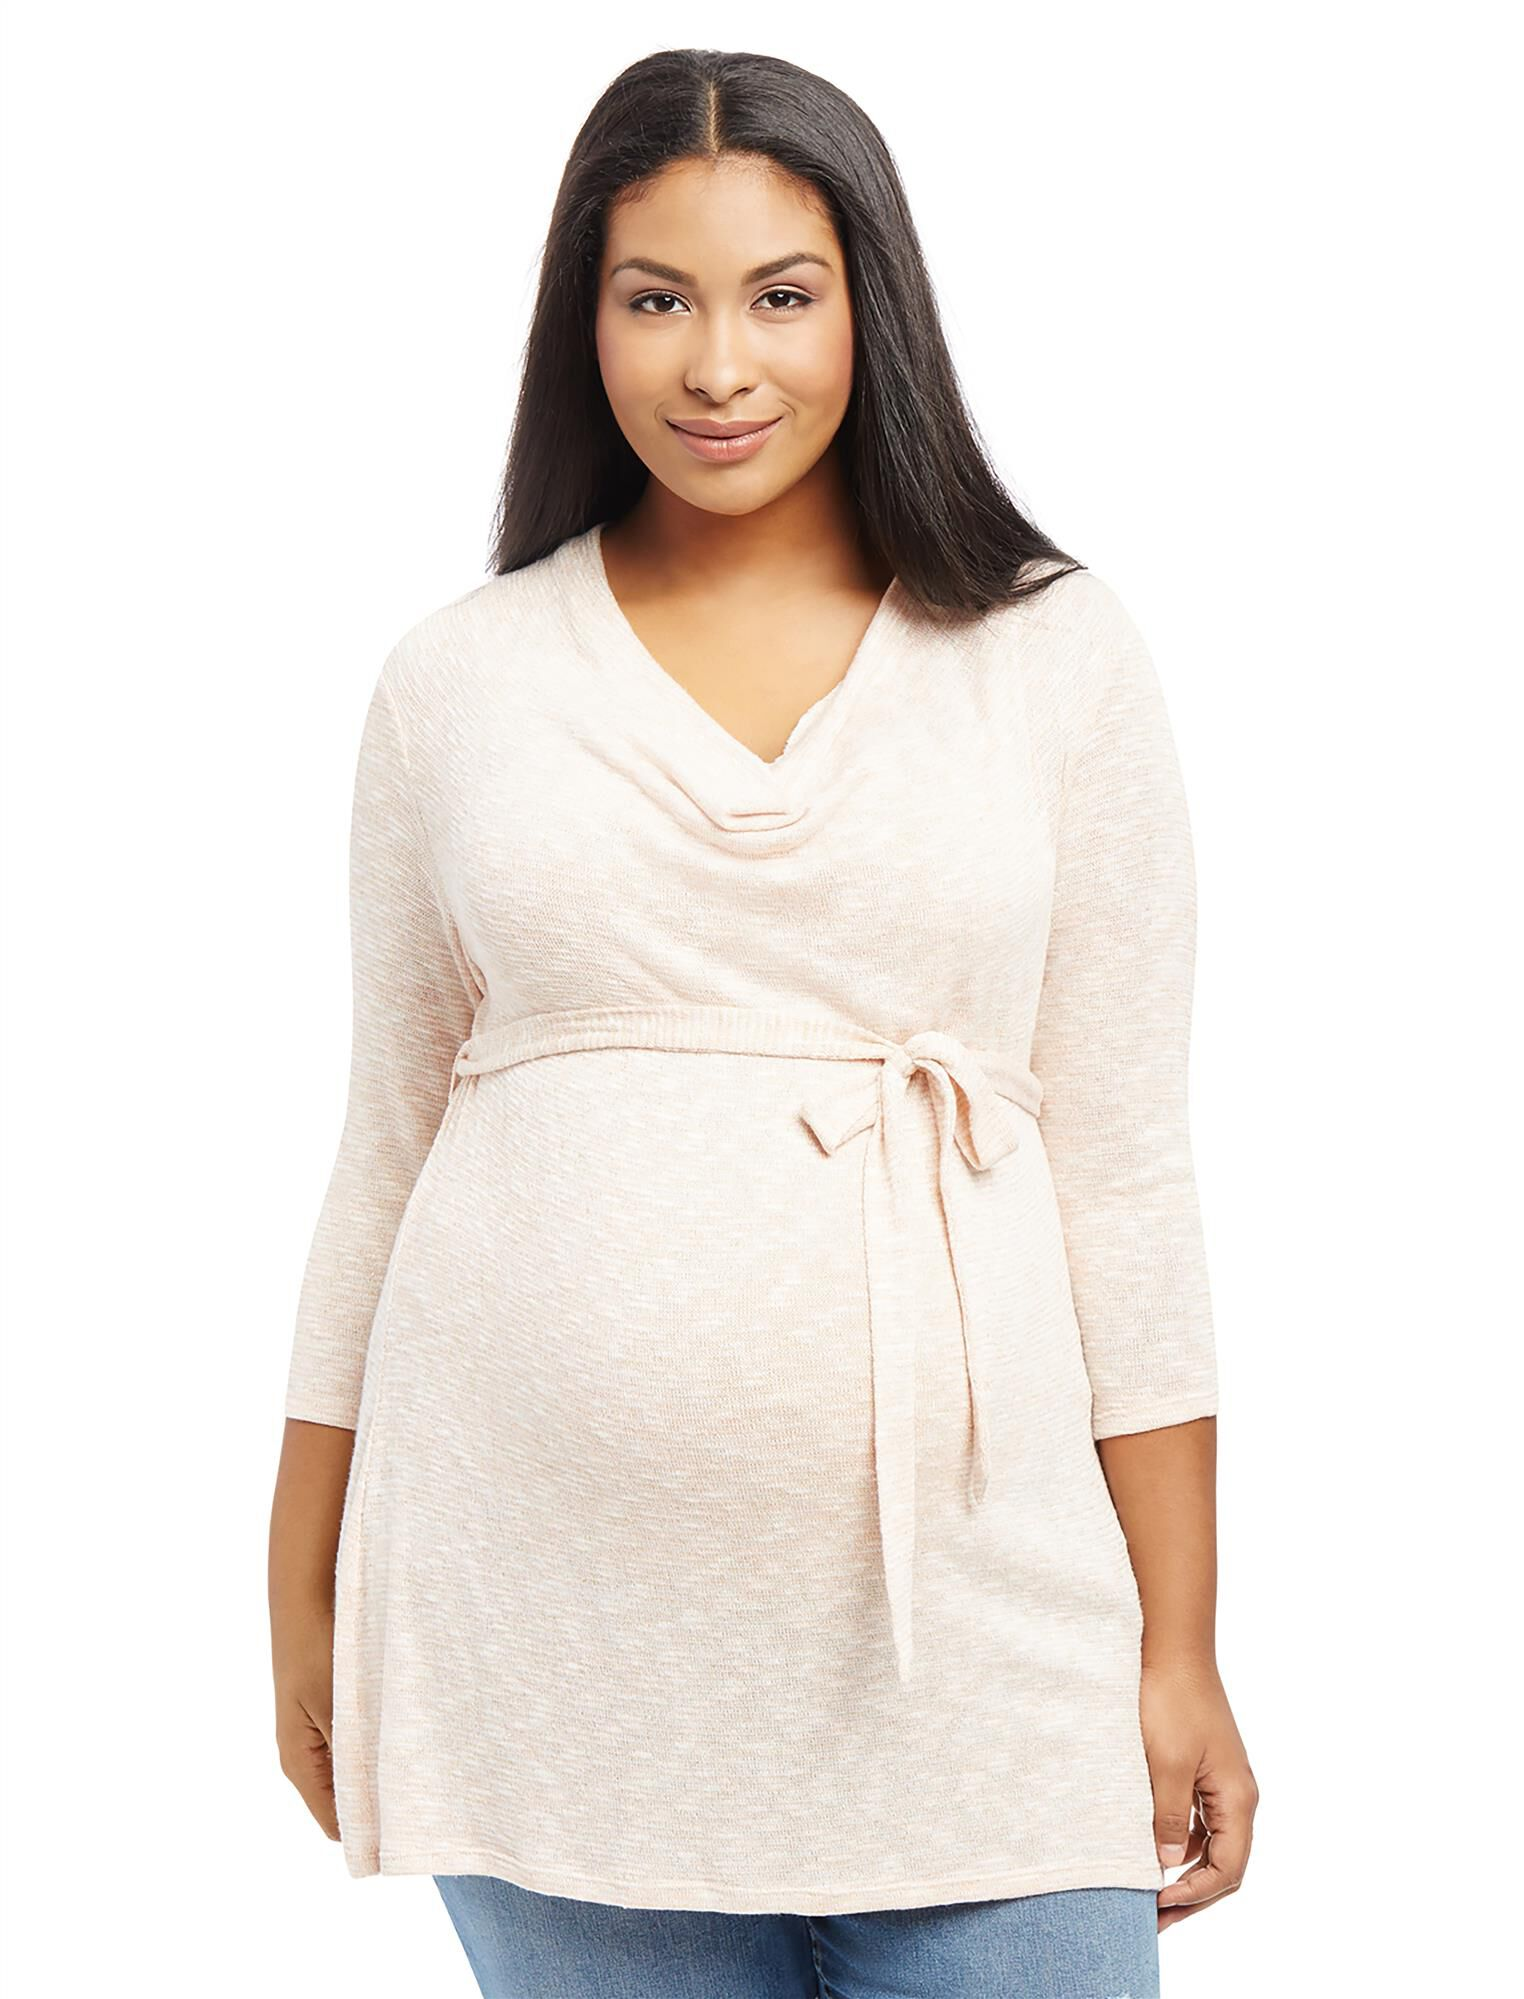 -Plus Size Cowl Neck Tie Detail Maternity Tunic